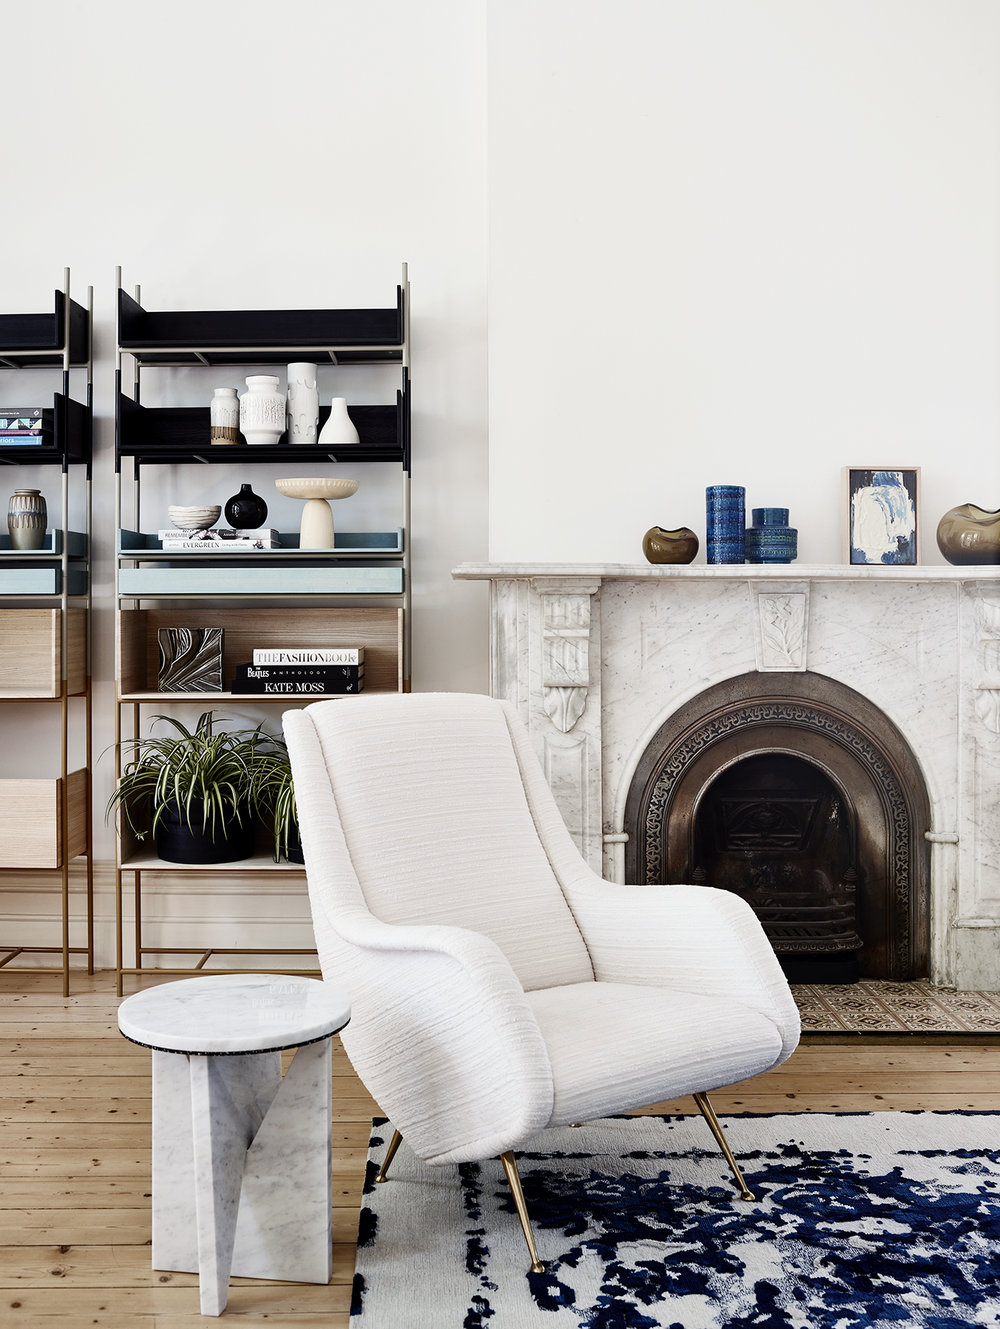 Room of the Week- Formal Living Room Becomes Fashionably Edgy formal living room Room of the Week: Formal Living Room Becomes Fashionably Edgy Room of the Week Formal Living Room Becomes Fashionably Edgy 3